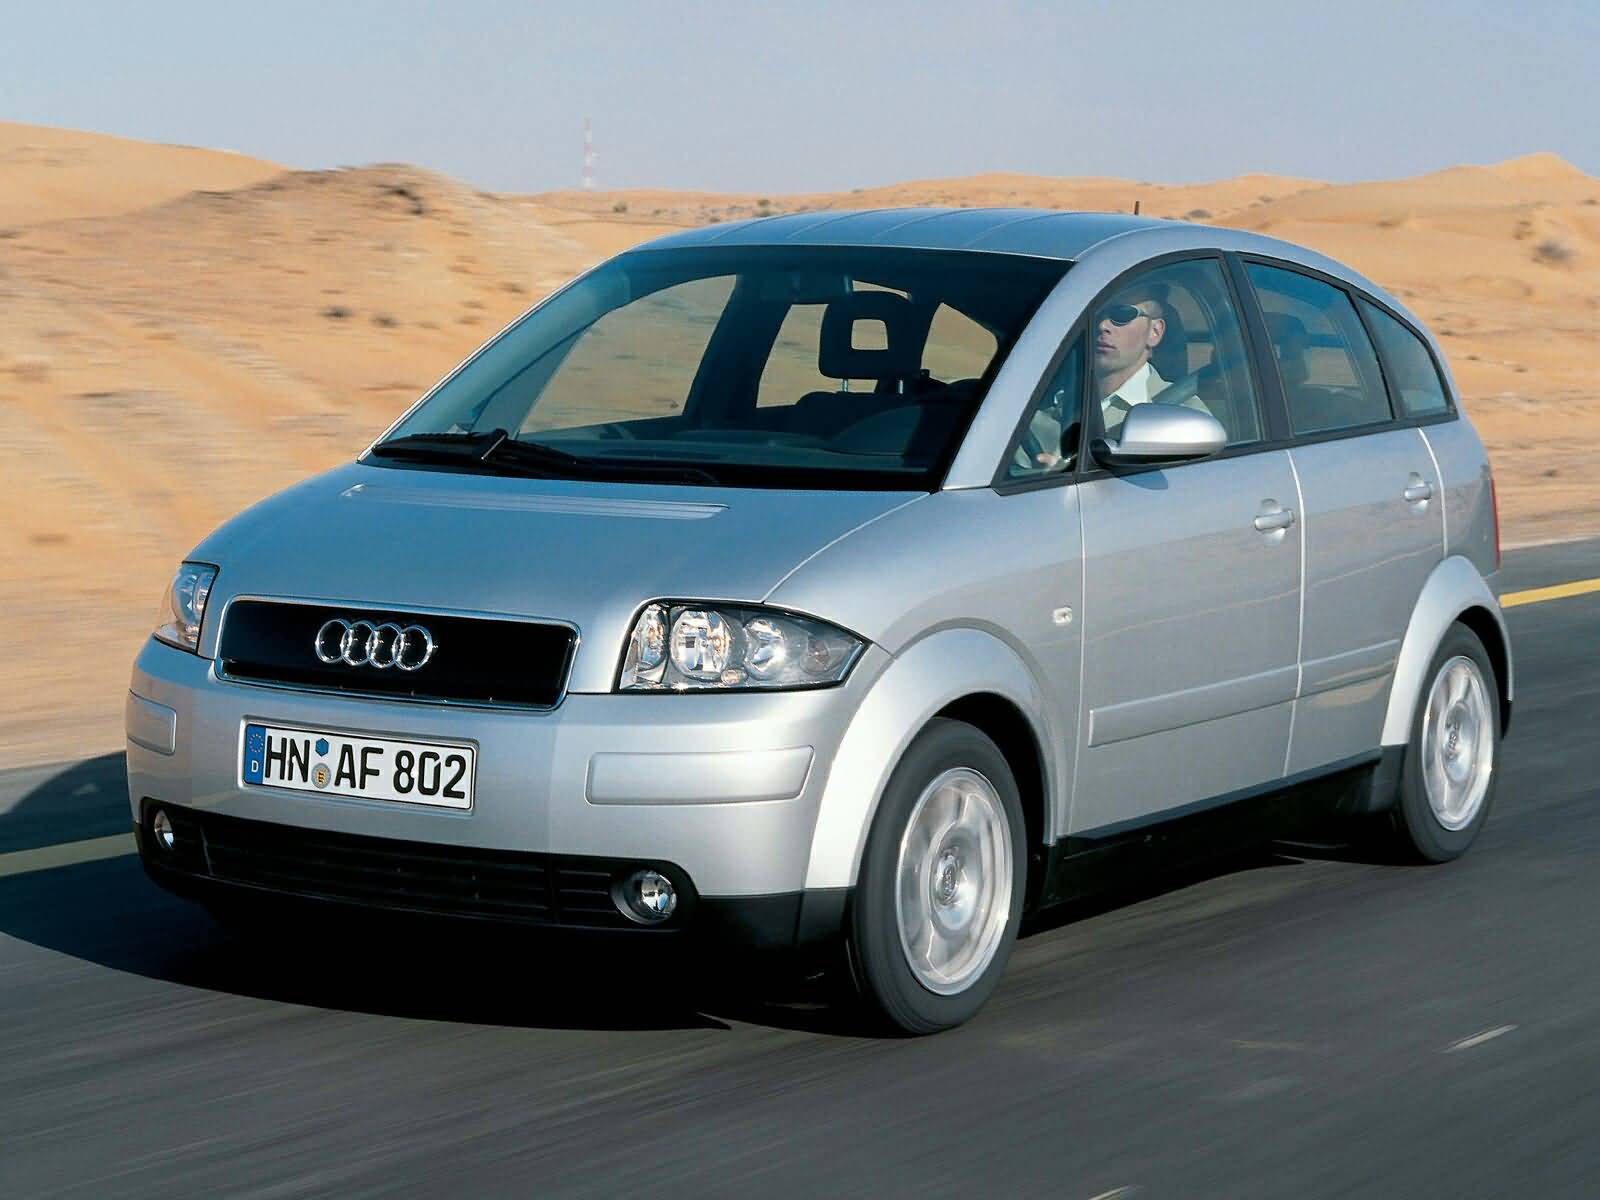 on the road of amazing silver Audi a2 car